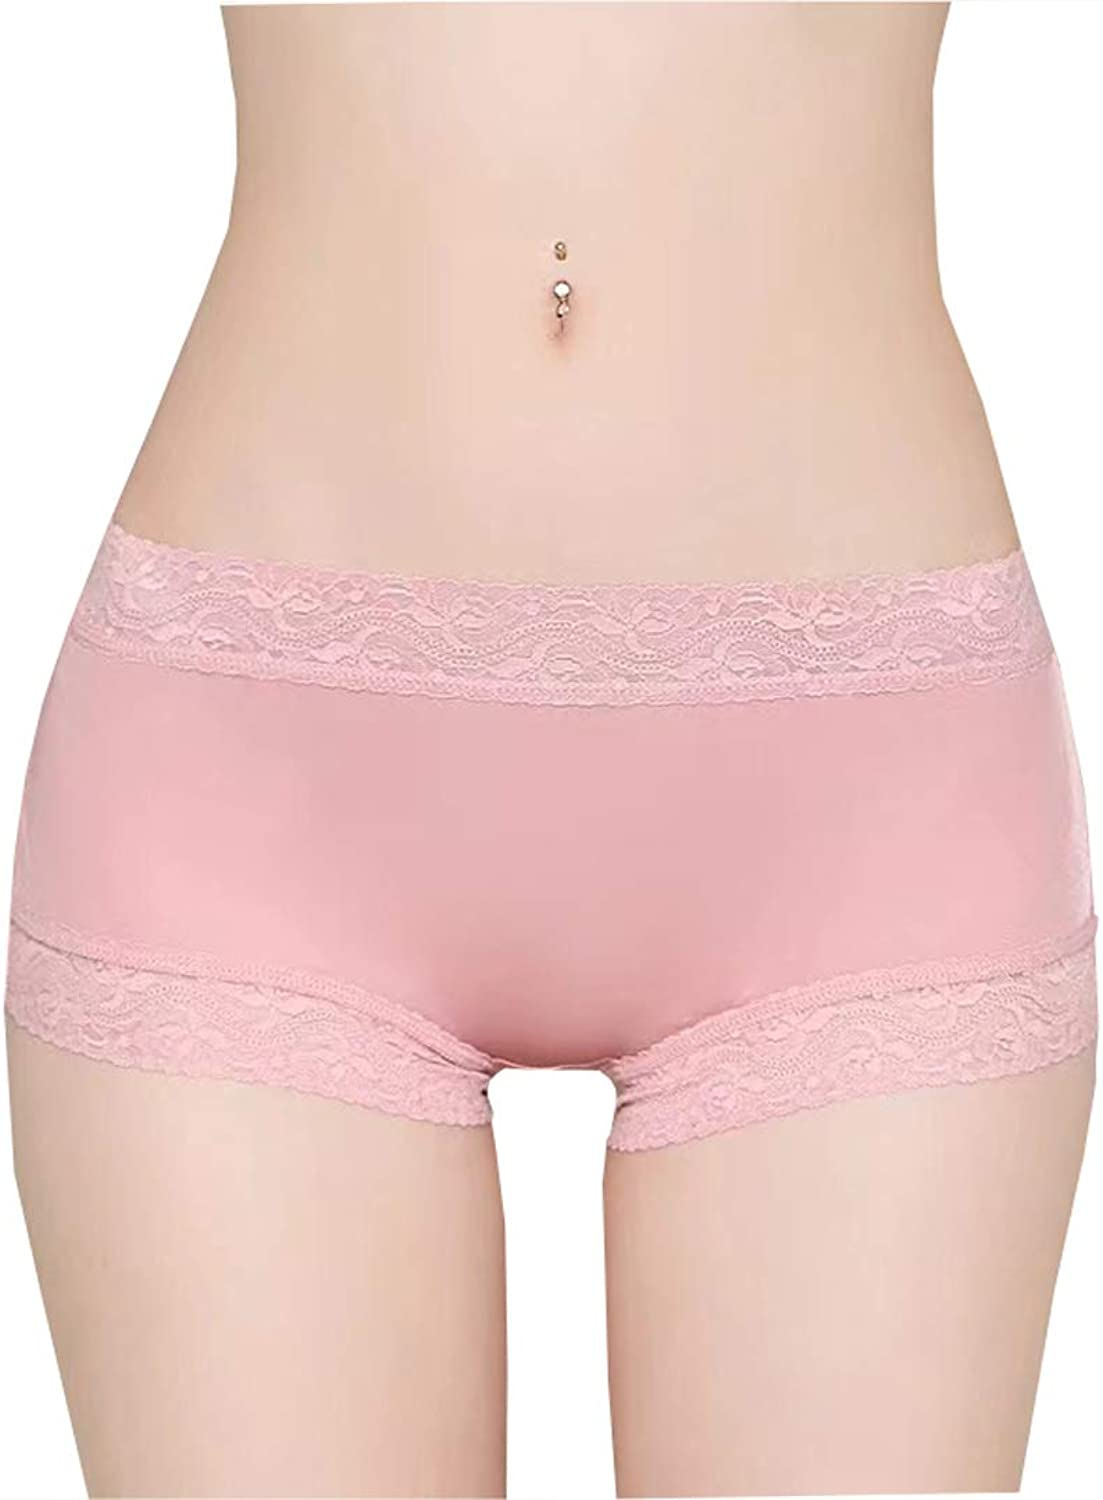 METWAY Women's New Mulberry Silk Lace No Show Panties